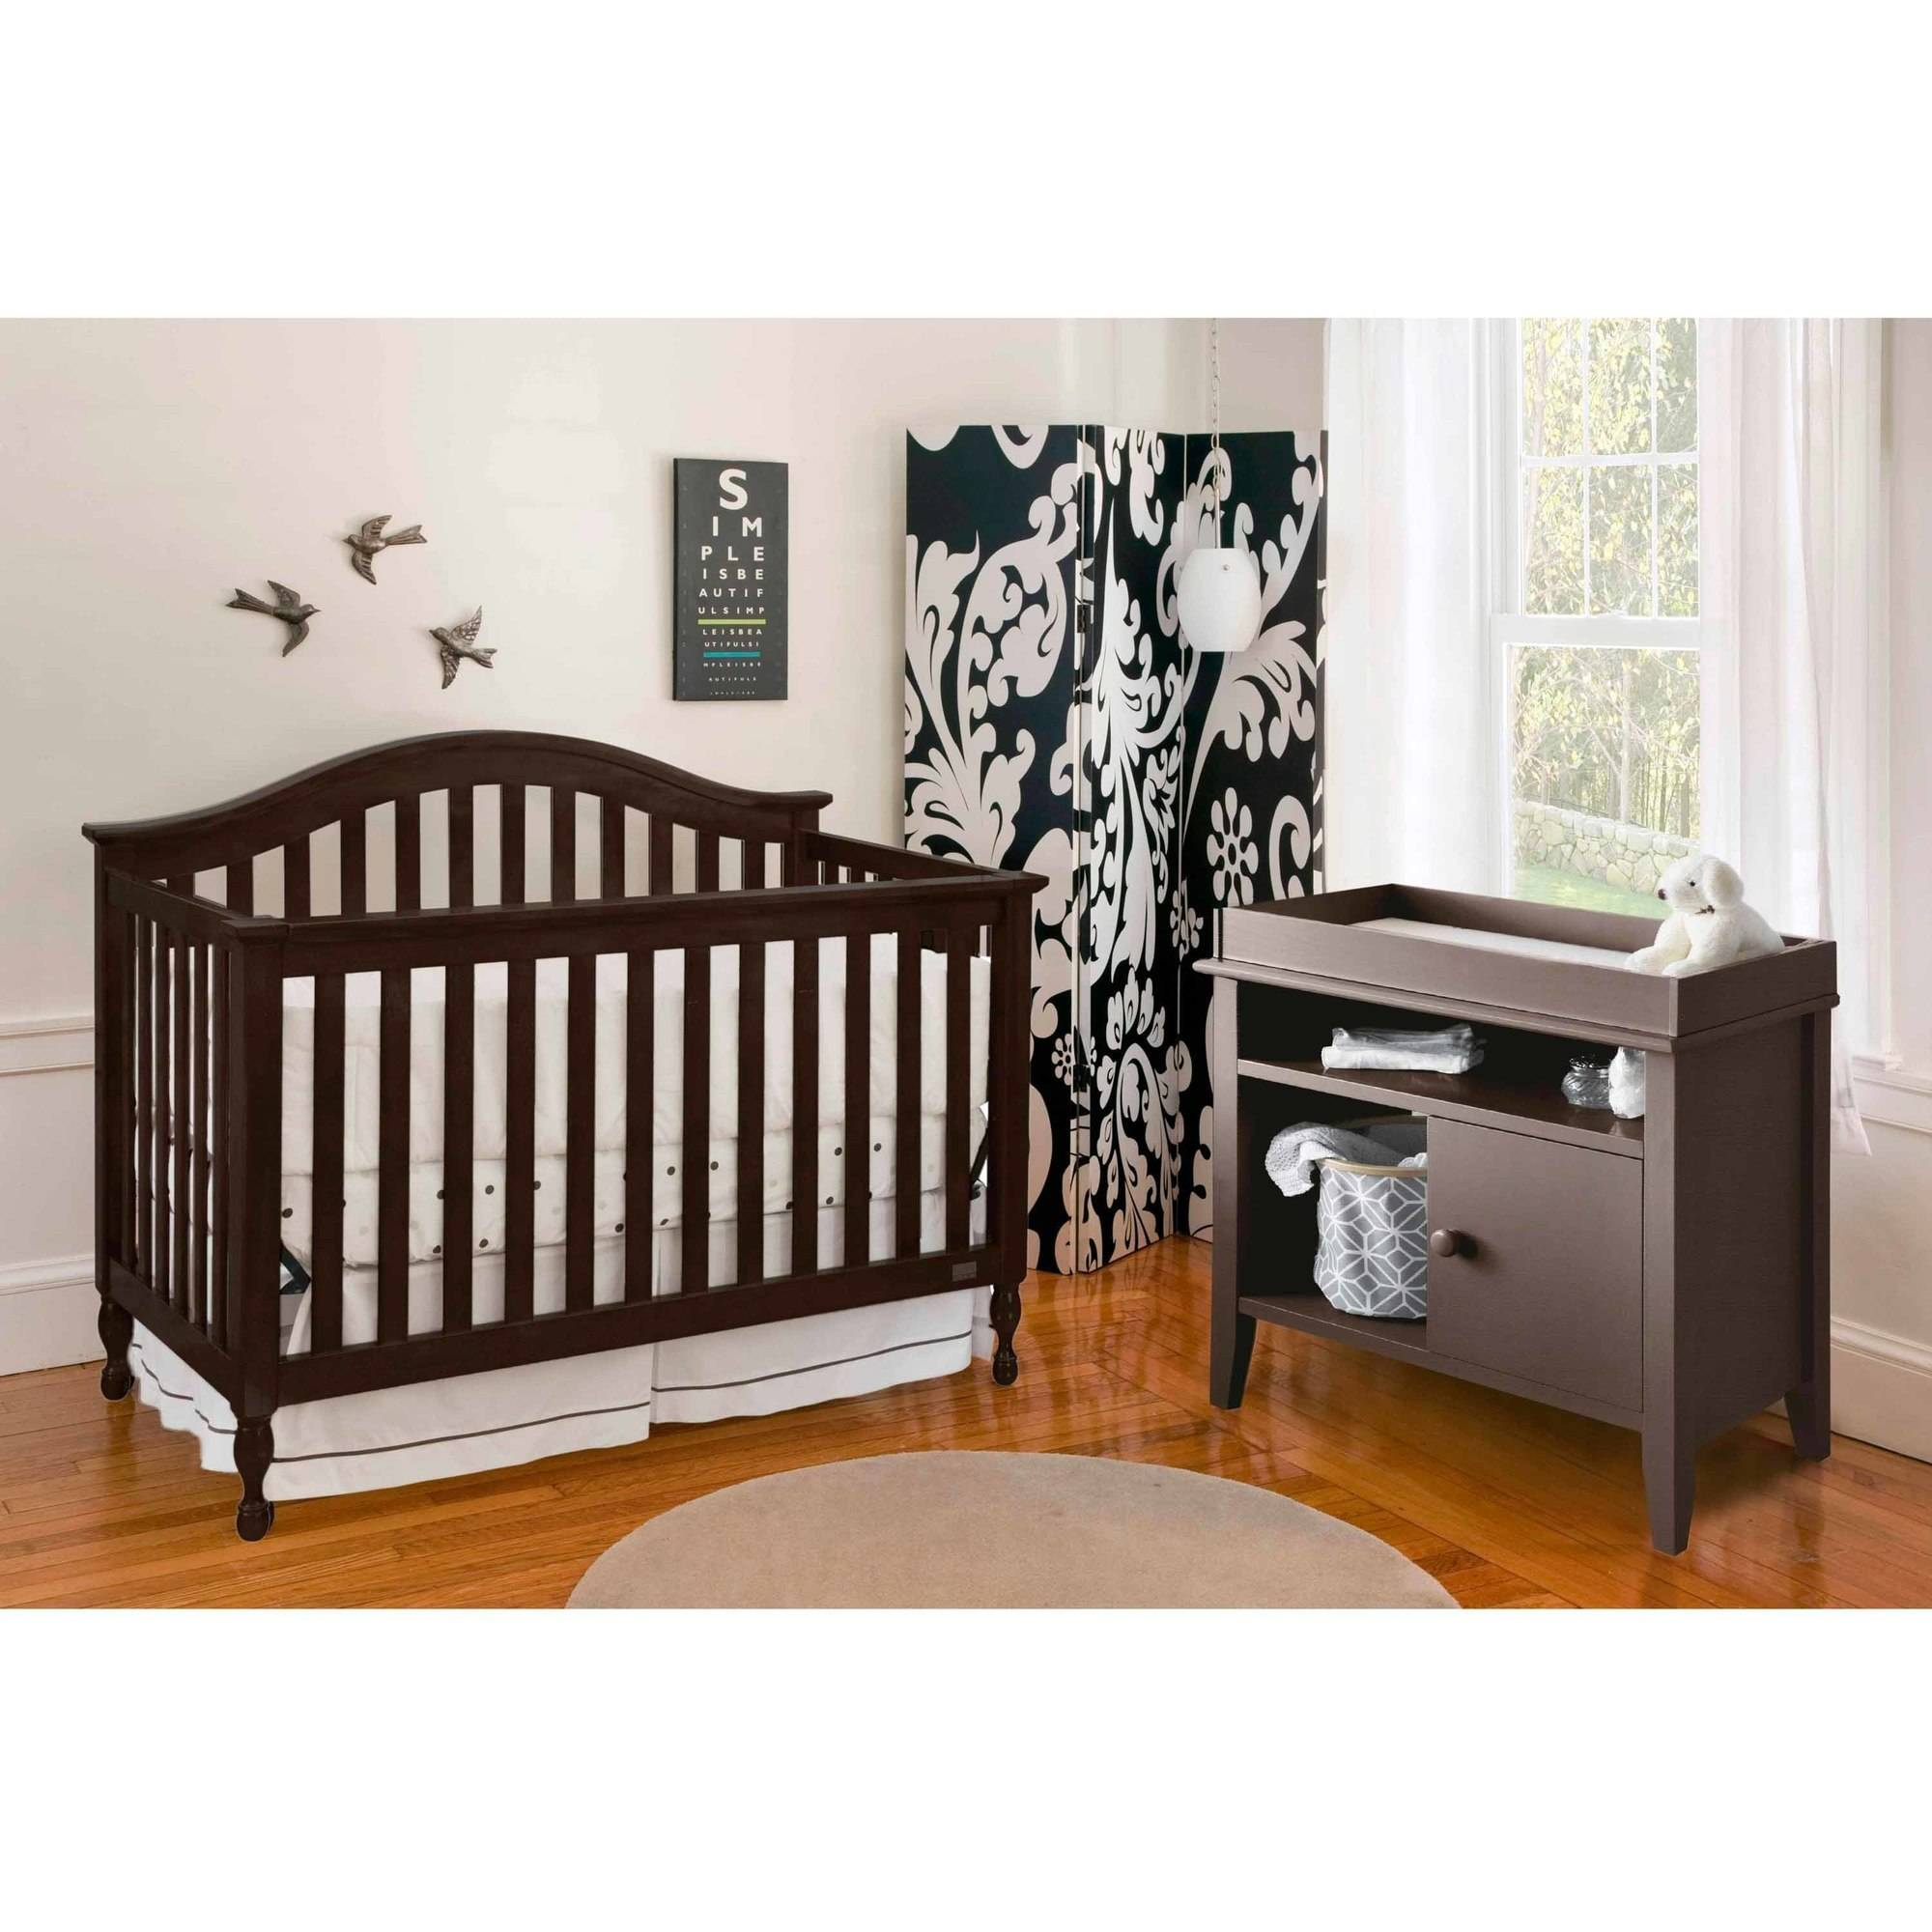 Lolly and Me Bailey 4-in-1 Fixed Side Convertible Crib, Acorn